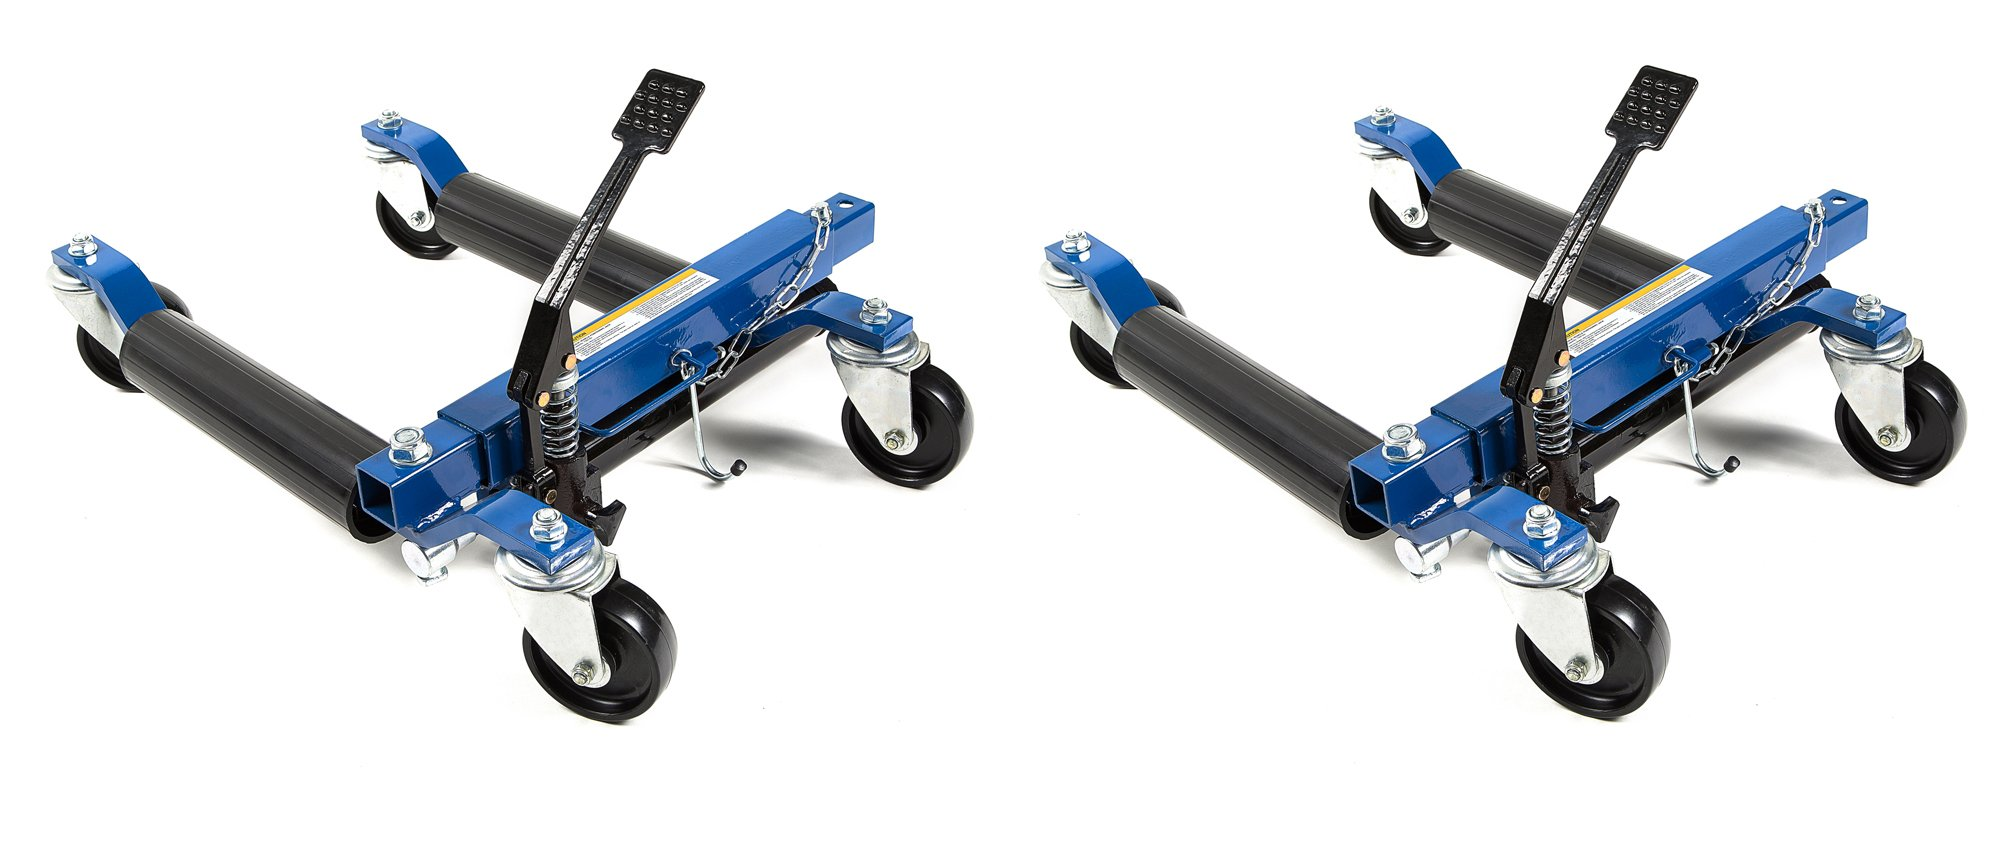 Capri Tools 21085-2PK 21085 Hydraulic Car Positioning 12'' Tire Jack/Dolly (2 Pack)